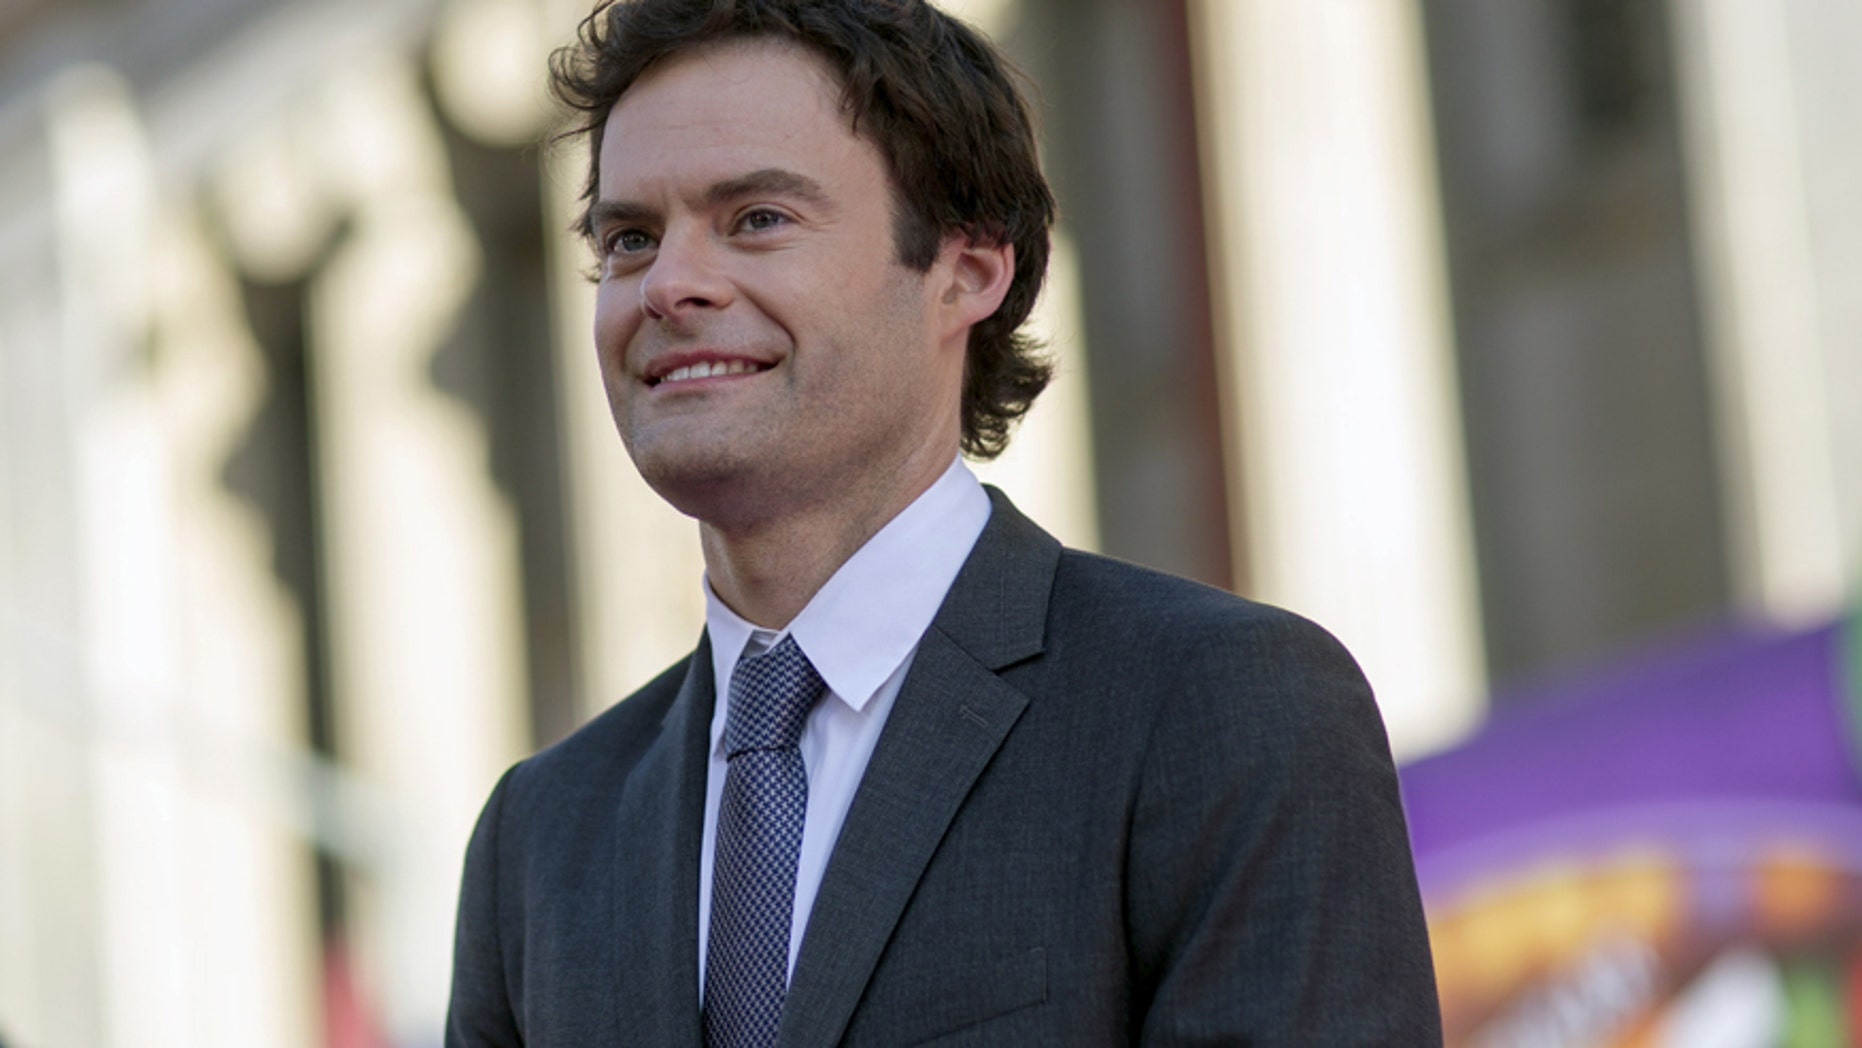 """Cast member Bill Hader poses at the premiere of """"Inside Out"""" at El Capitan theatre in Hollywood, California June 8, 2015. The movie opens in the U.S. on June 19."""